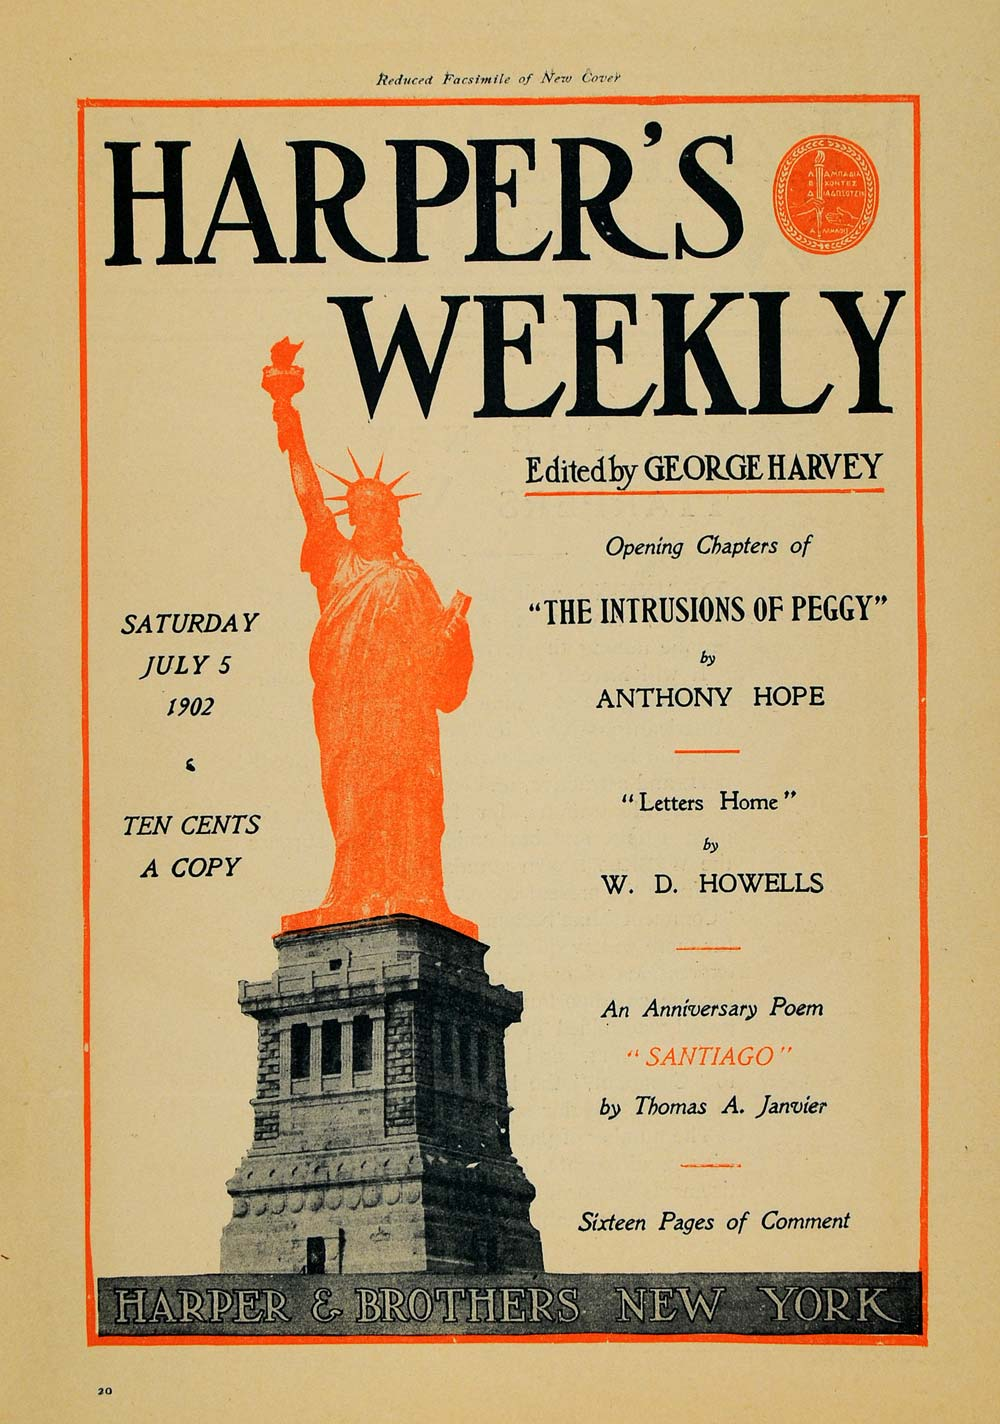 1902 Ad Harpers Weekly George Harvey Thomas Janvier - ORIGINAL ADVERTISING TOM1